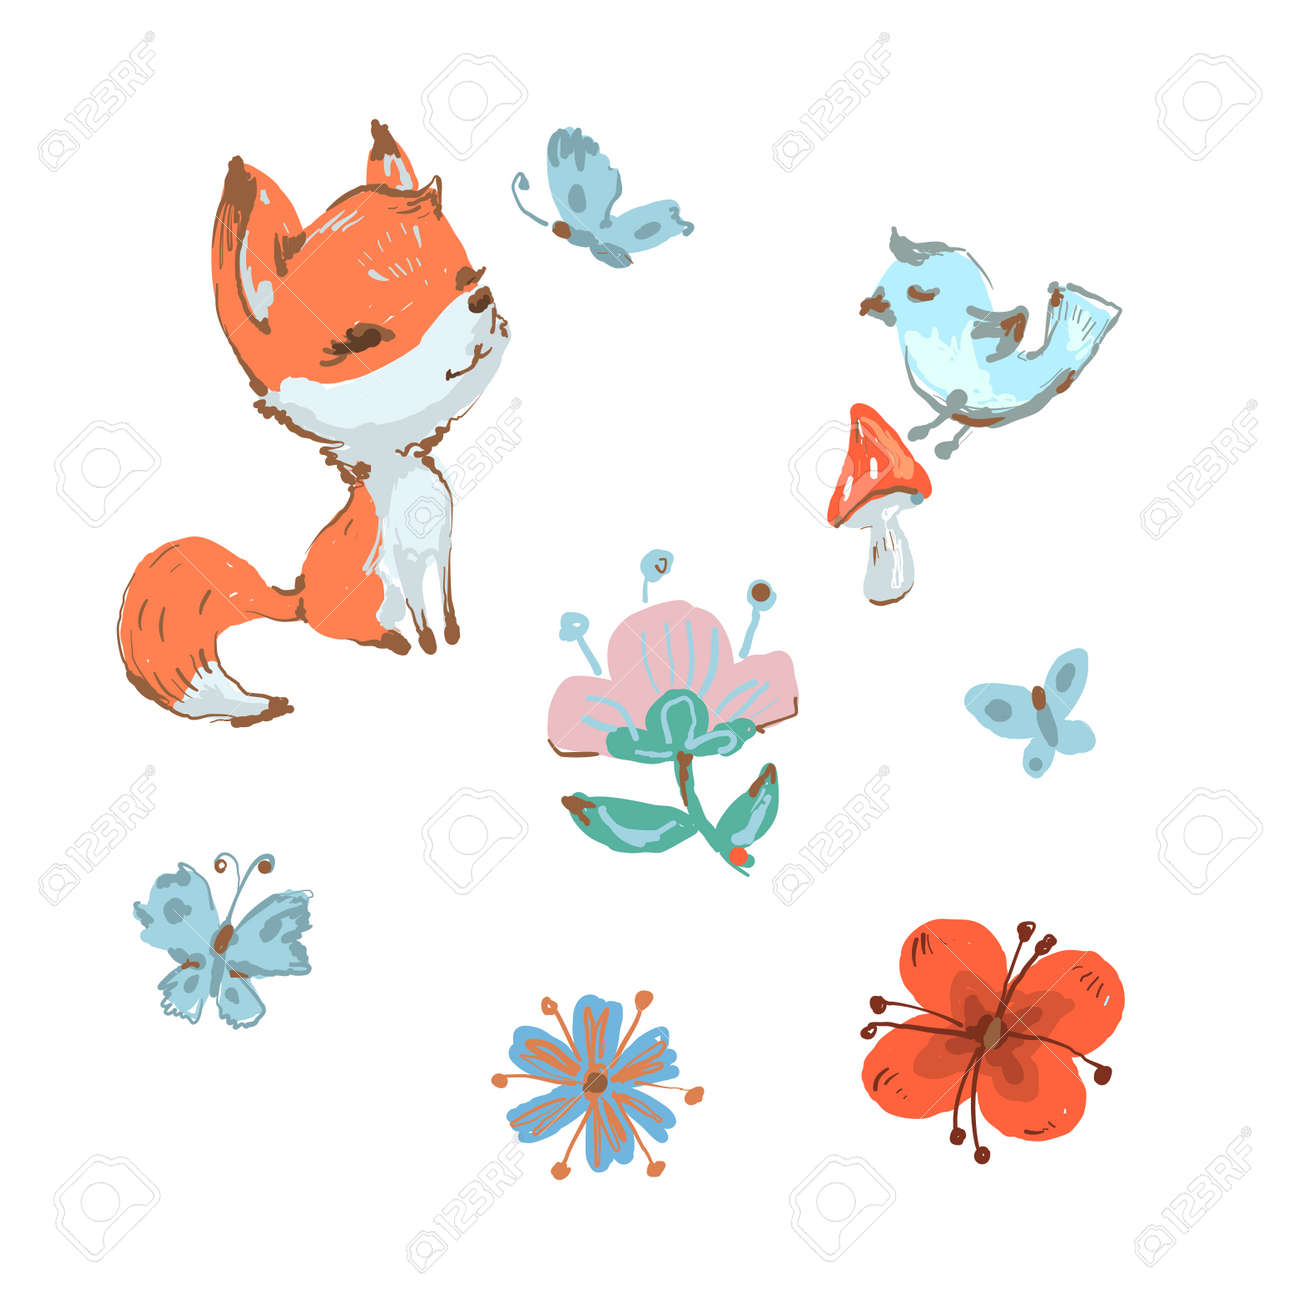 Cute fox and bird, butterfly mushroom and flowers spring collection - 162236688